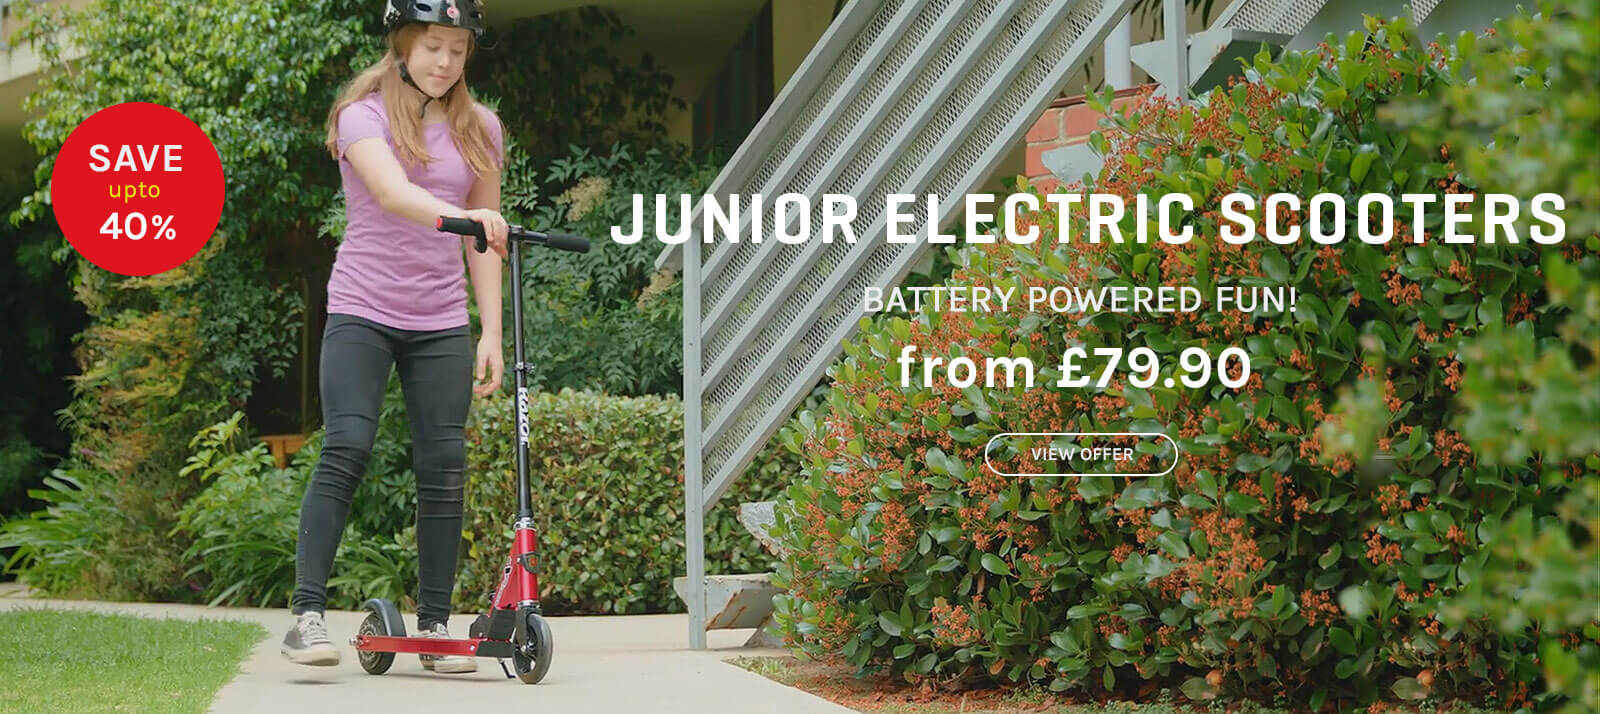 Junior Electric Scooter Offers From Funbikes